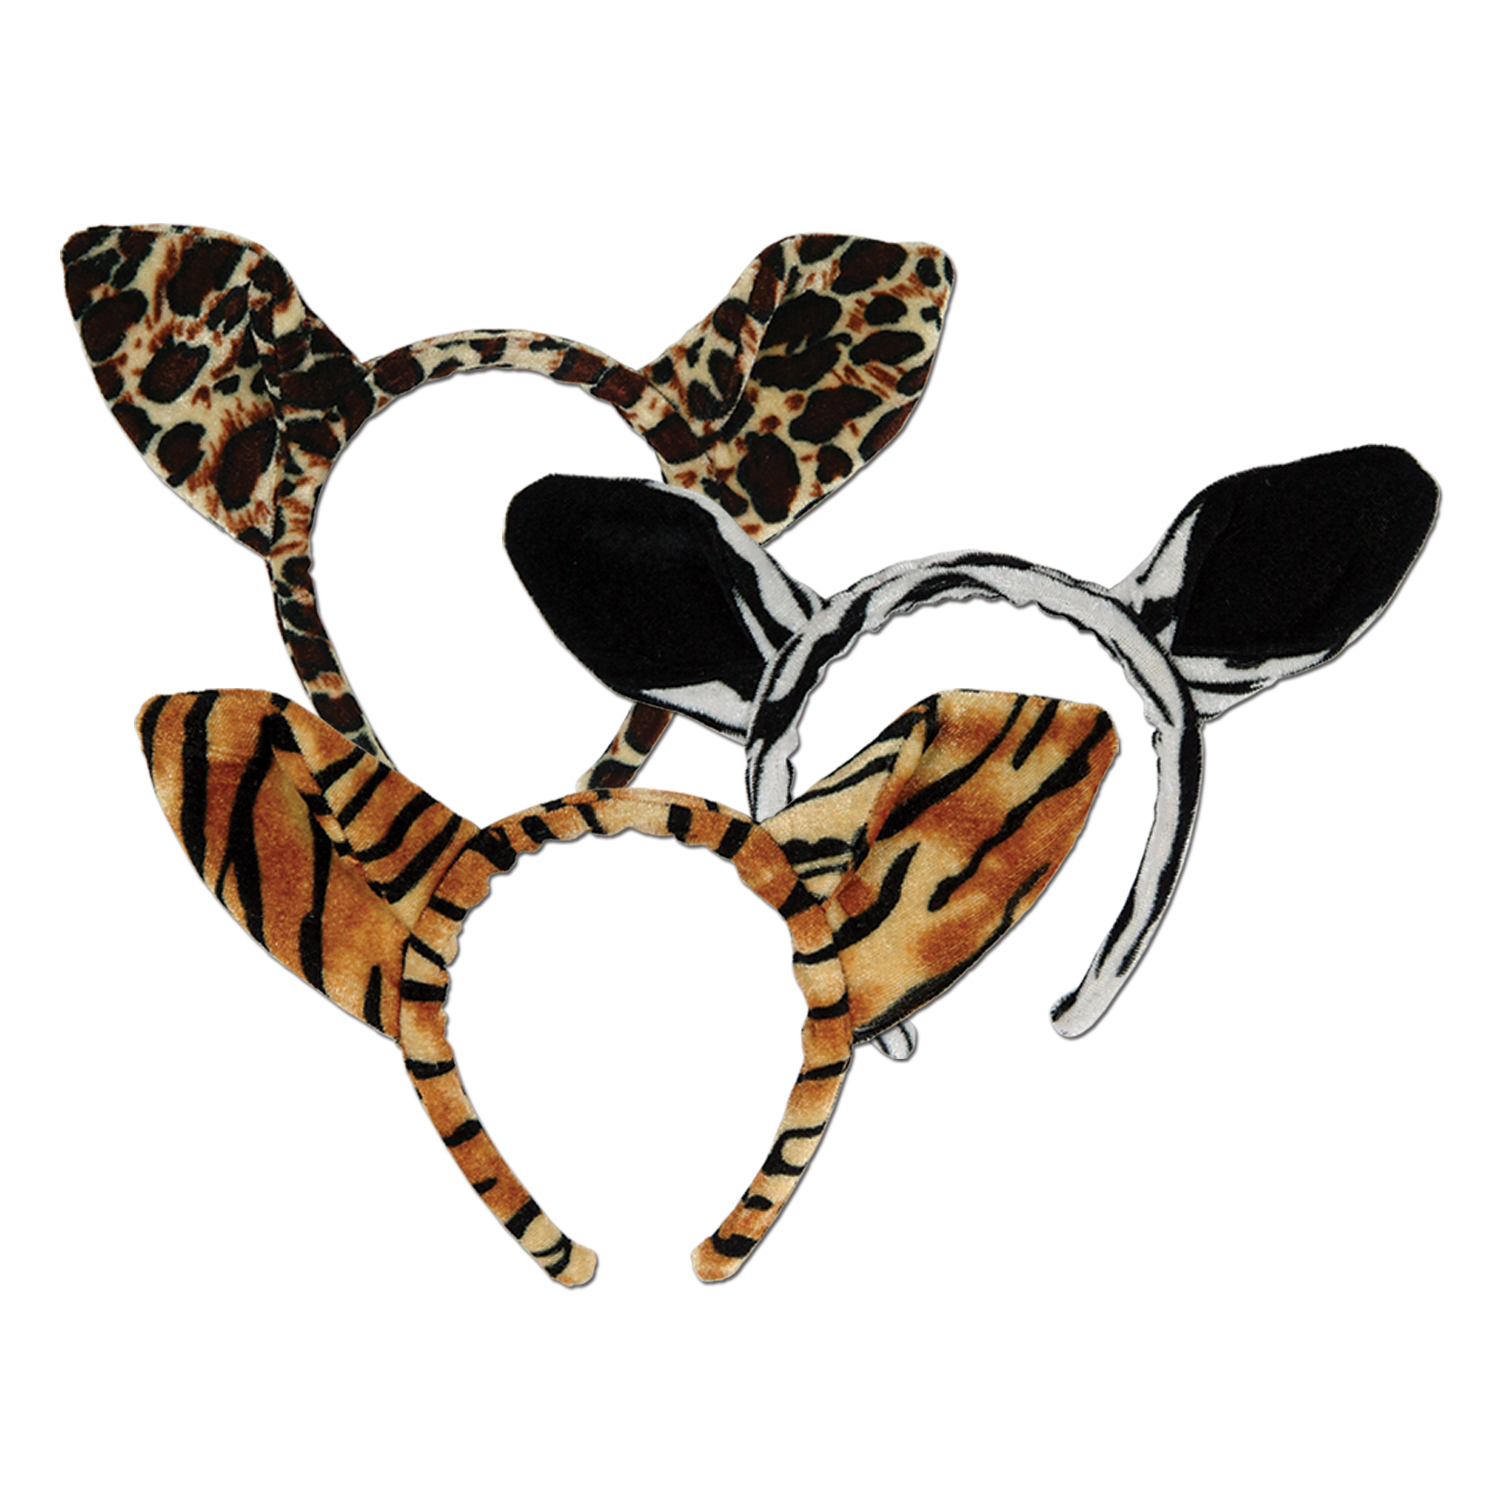 animal print ears headband novelty item